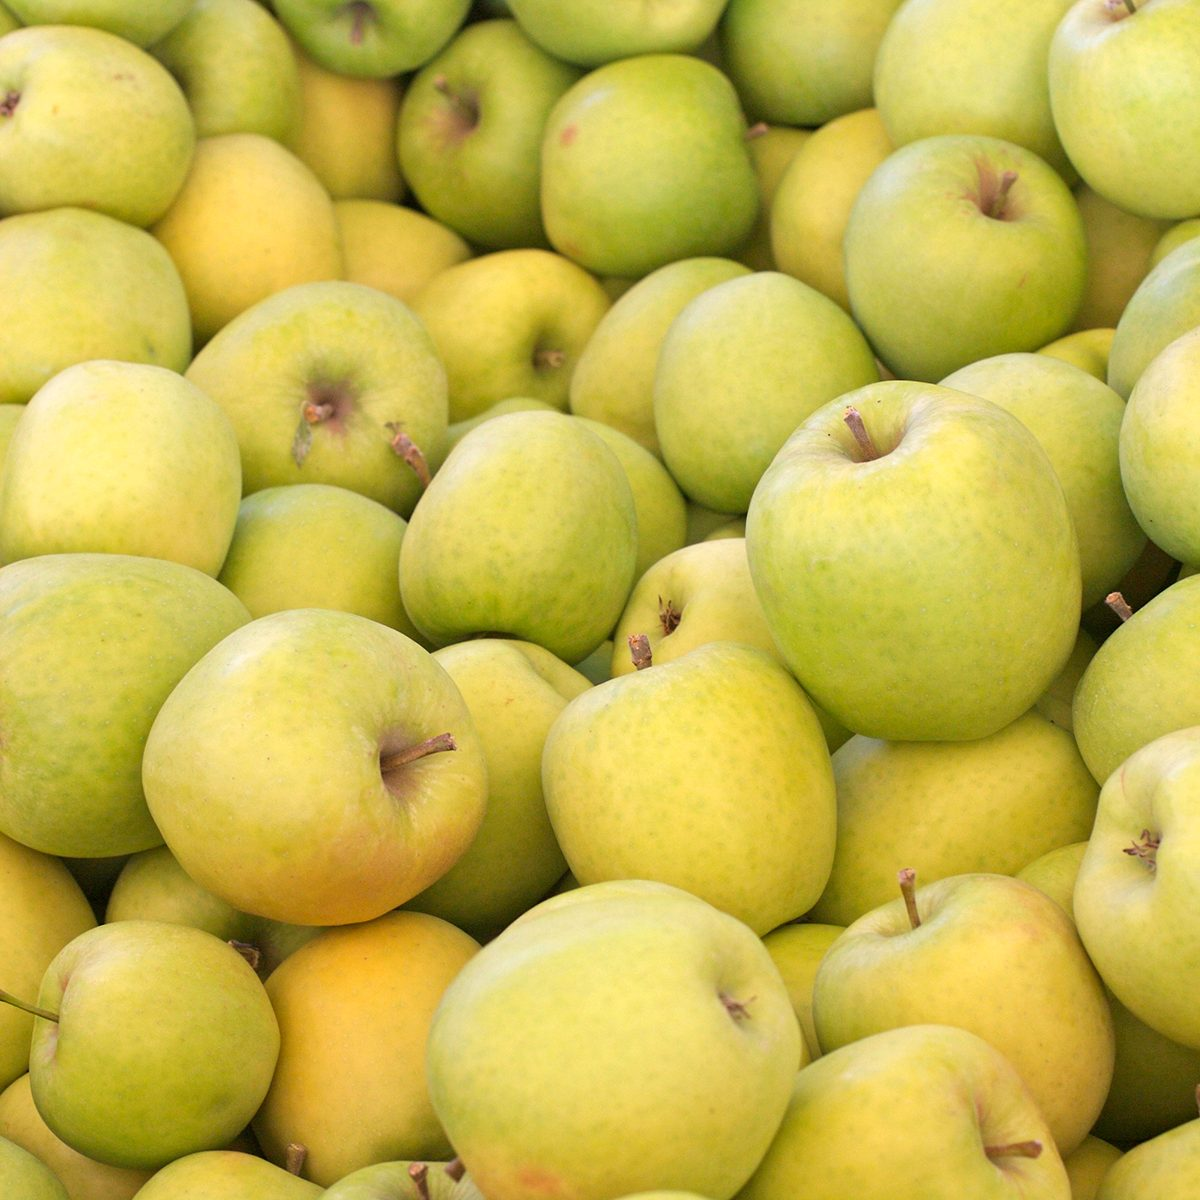 Crispin (also known as Mutsu) apples